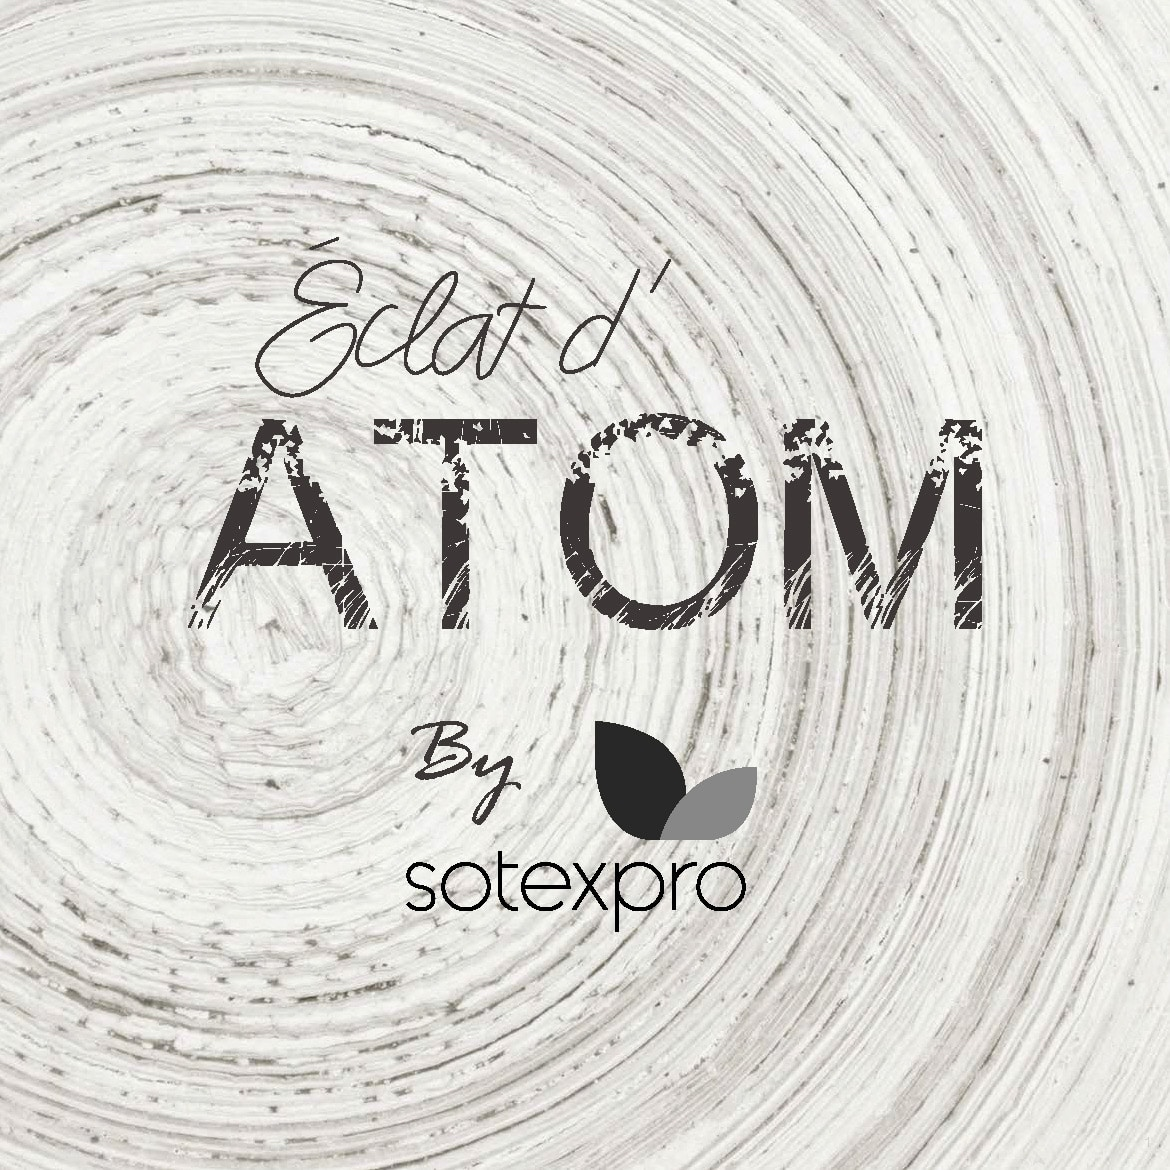 Collection éclat d'ATOM Sotexpro